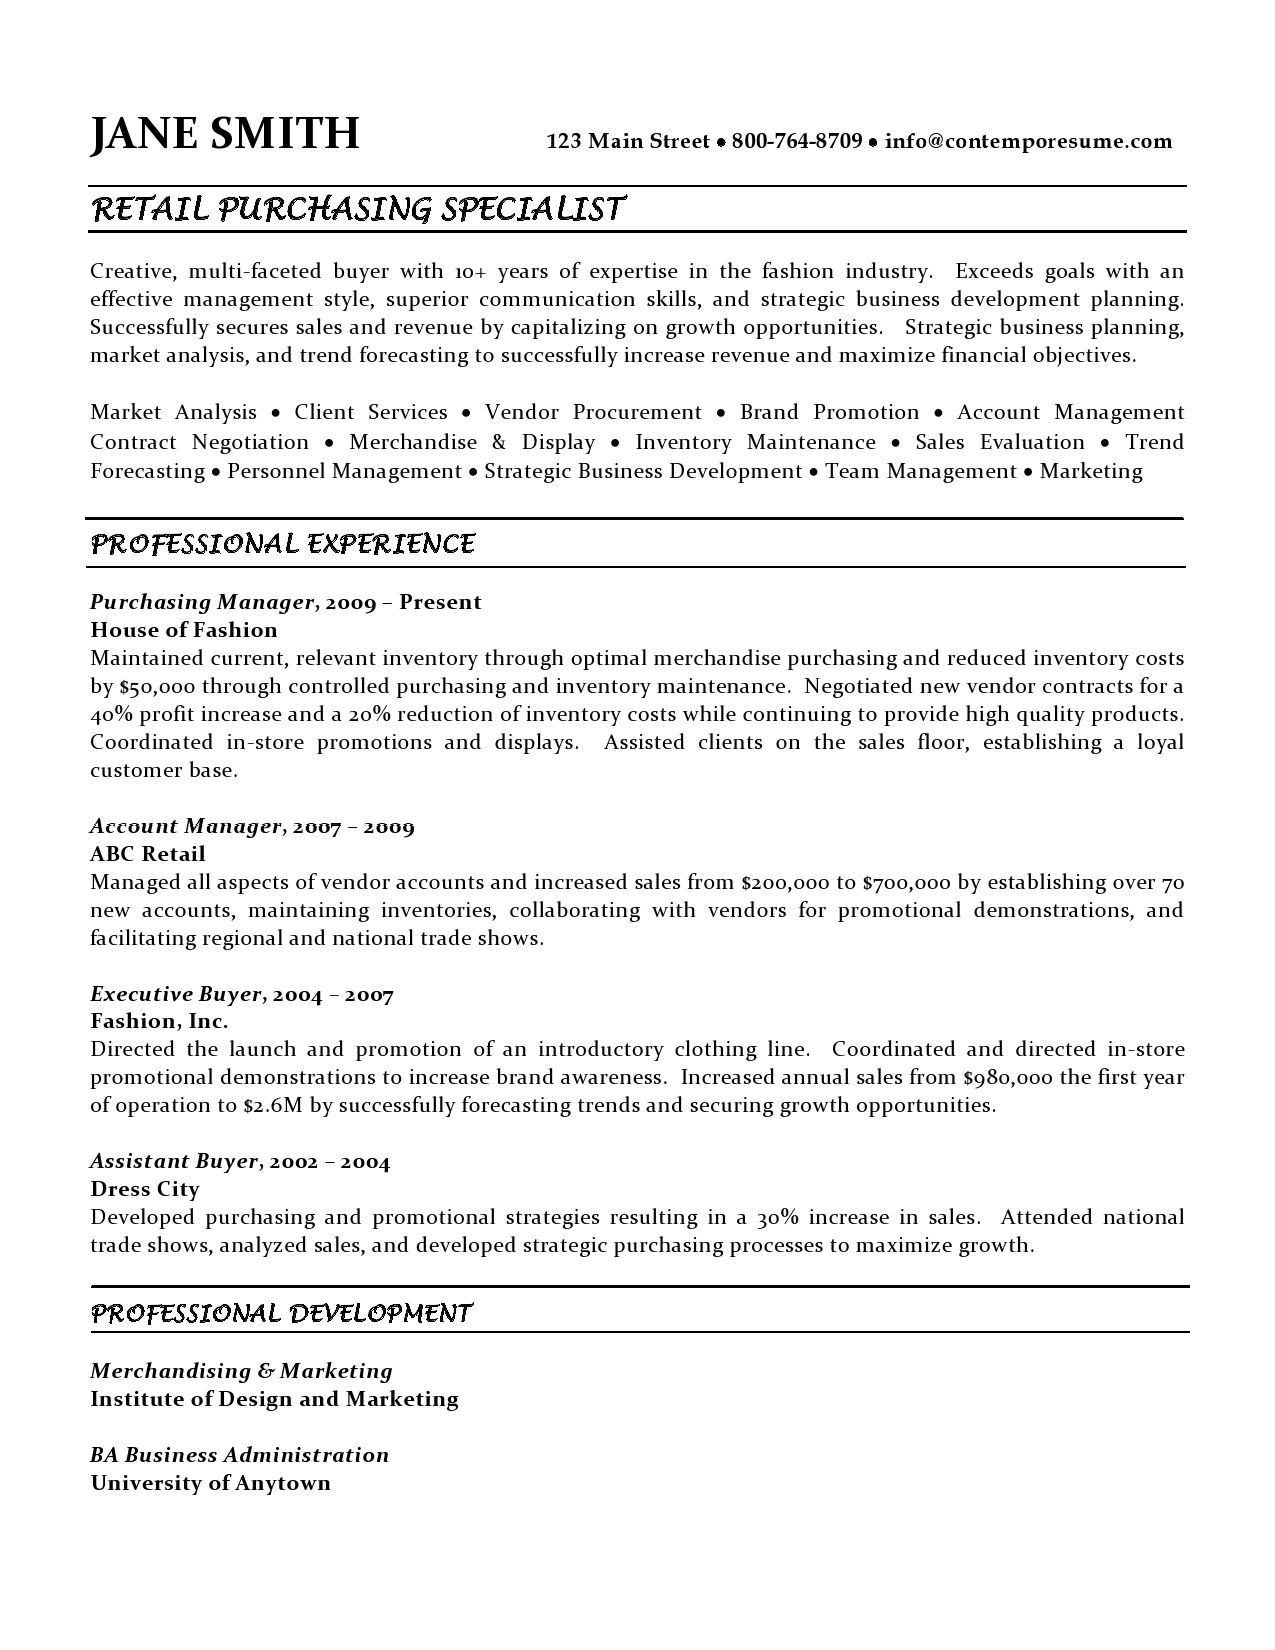 retail clothing buyer resume sample